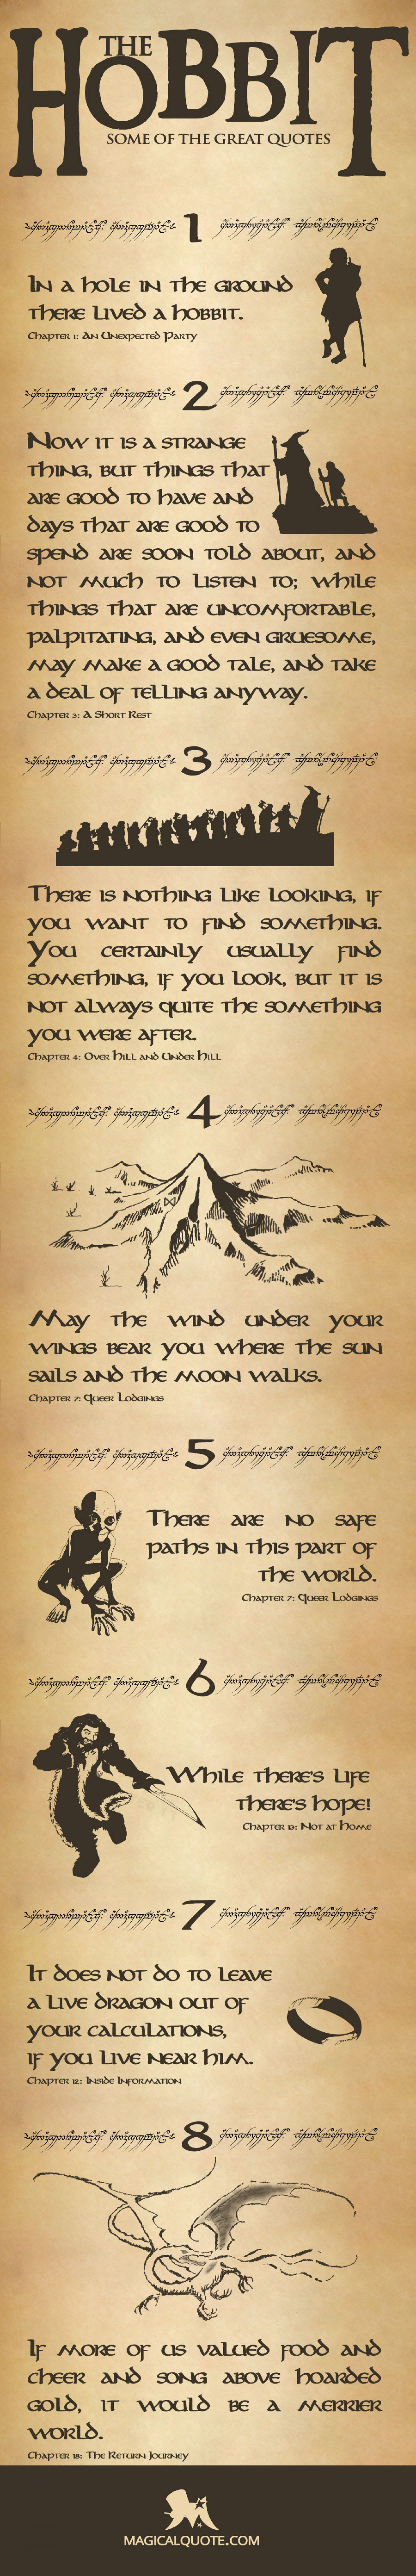 The Hobbit: Some of the Great Quotes Infographic